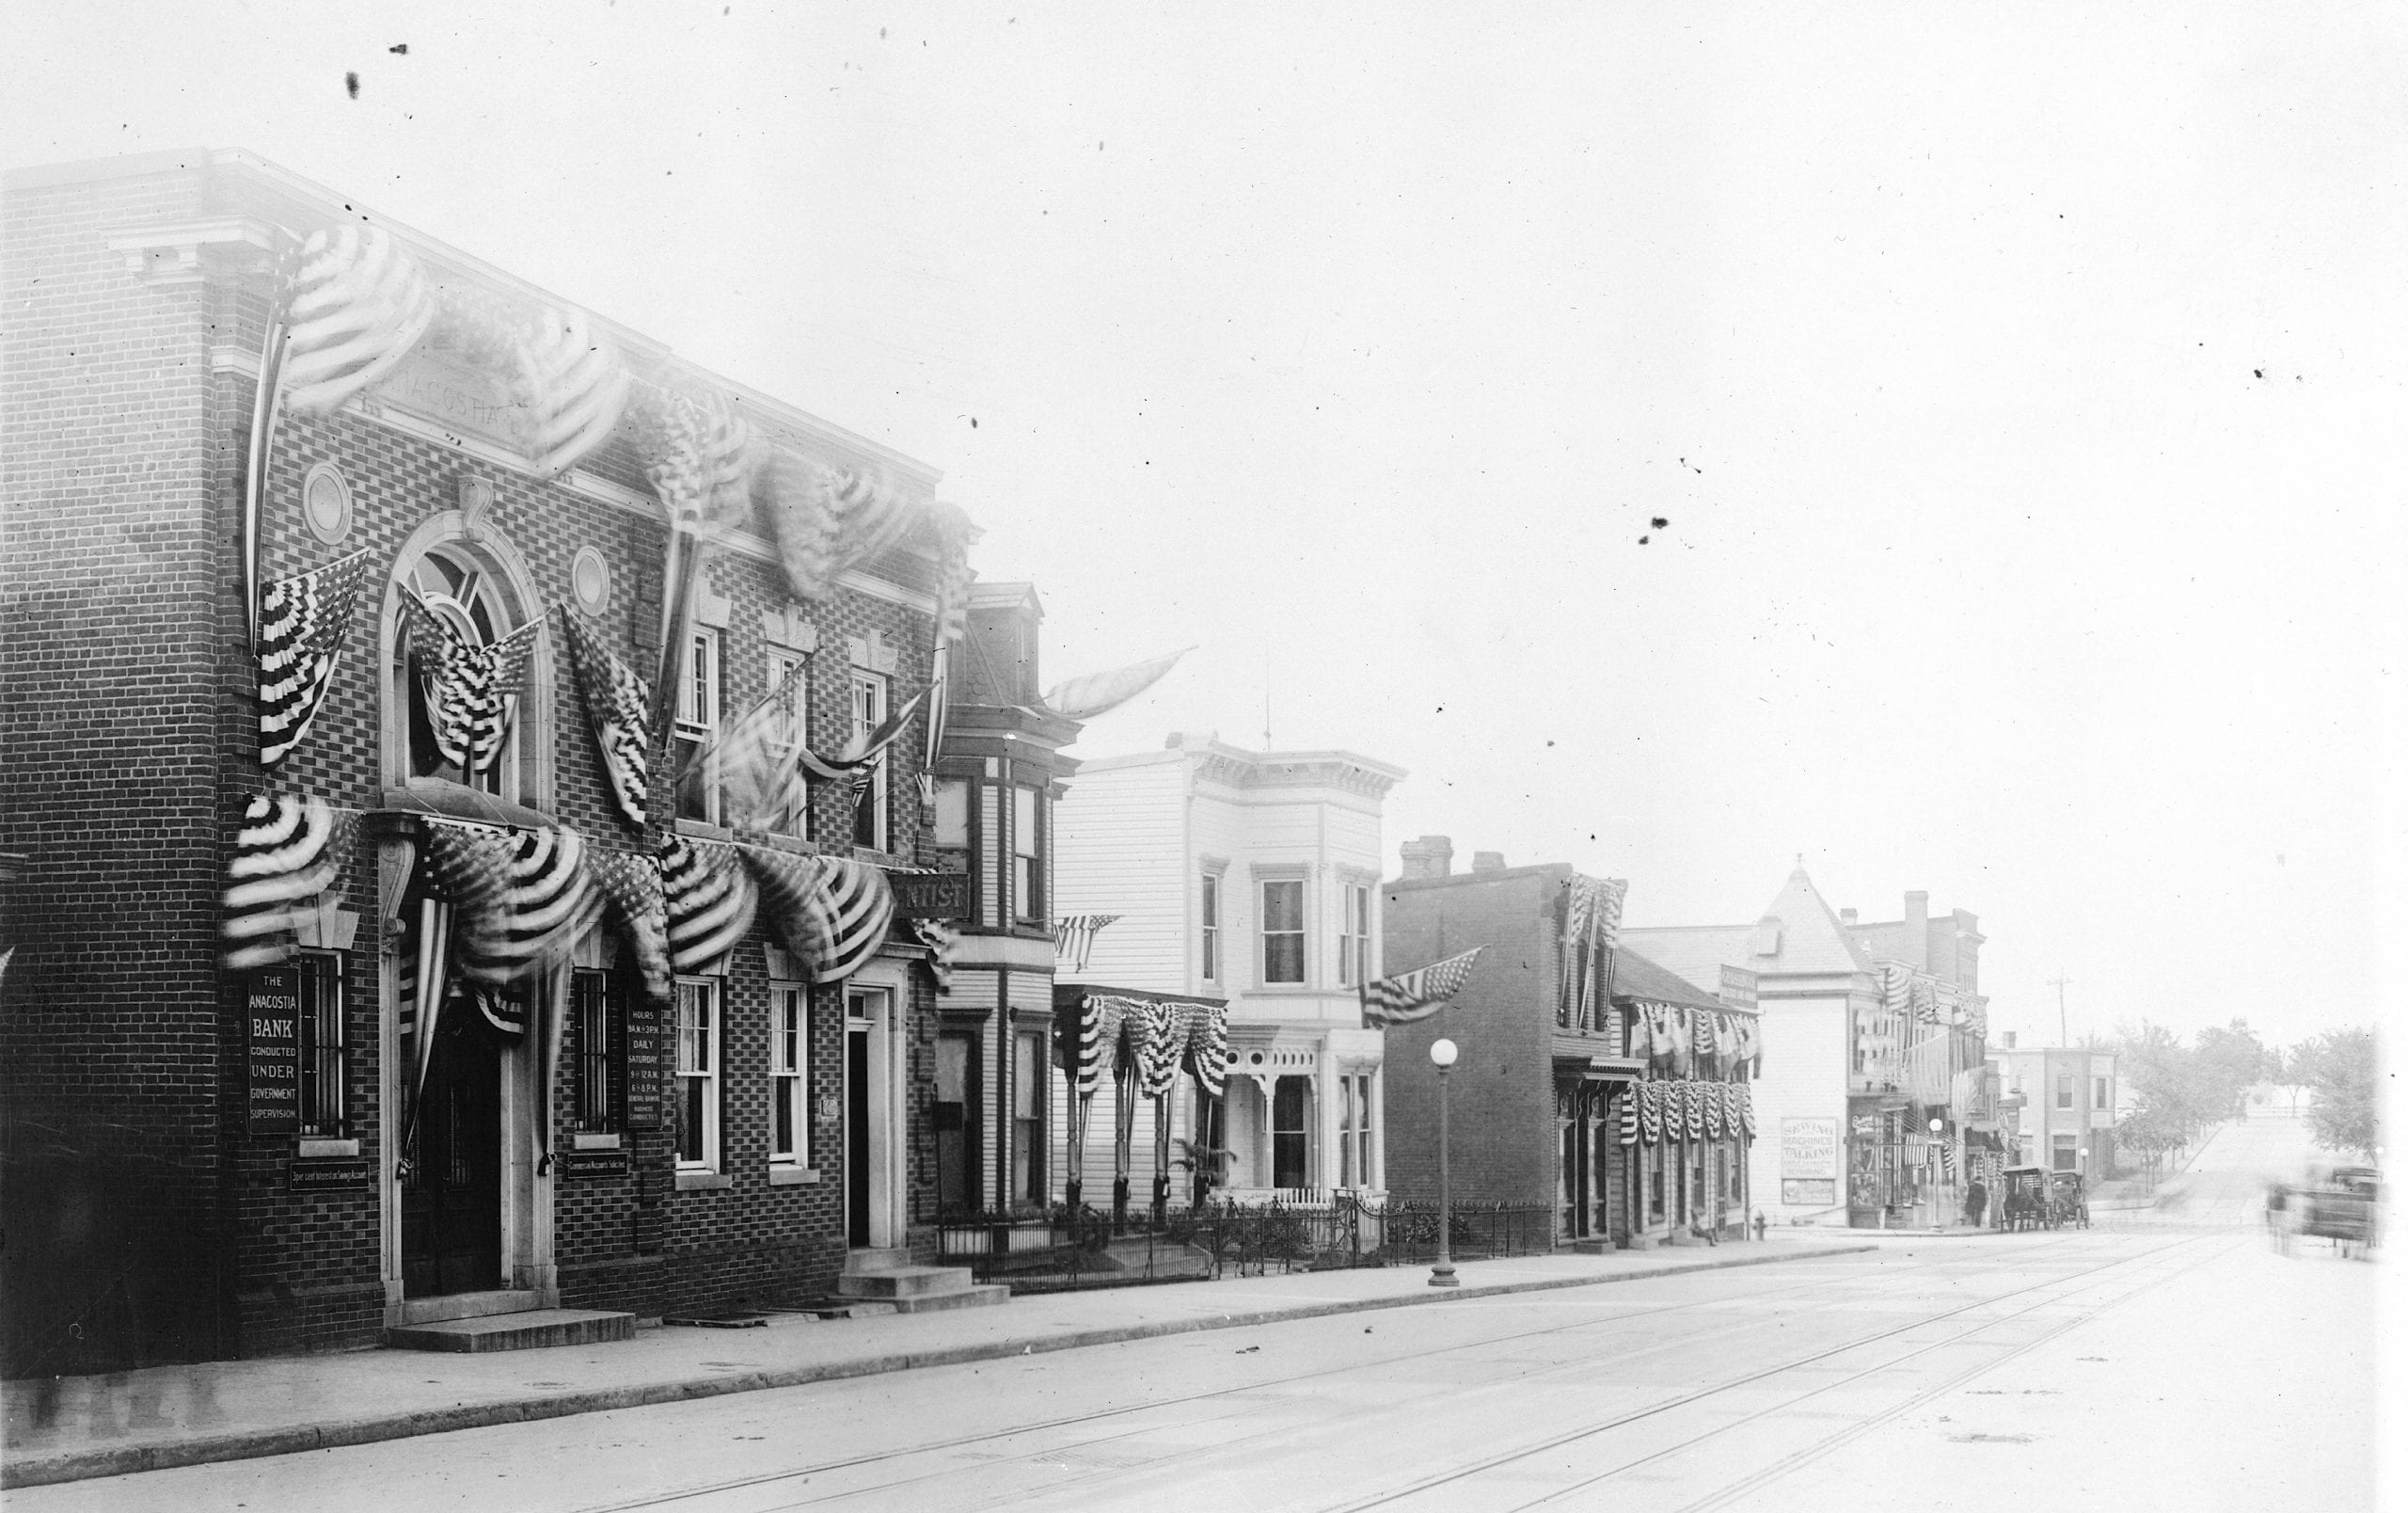 Then and Now: The Anacostia Bank